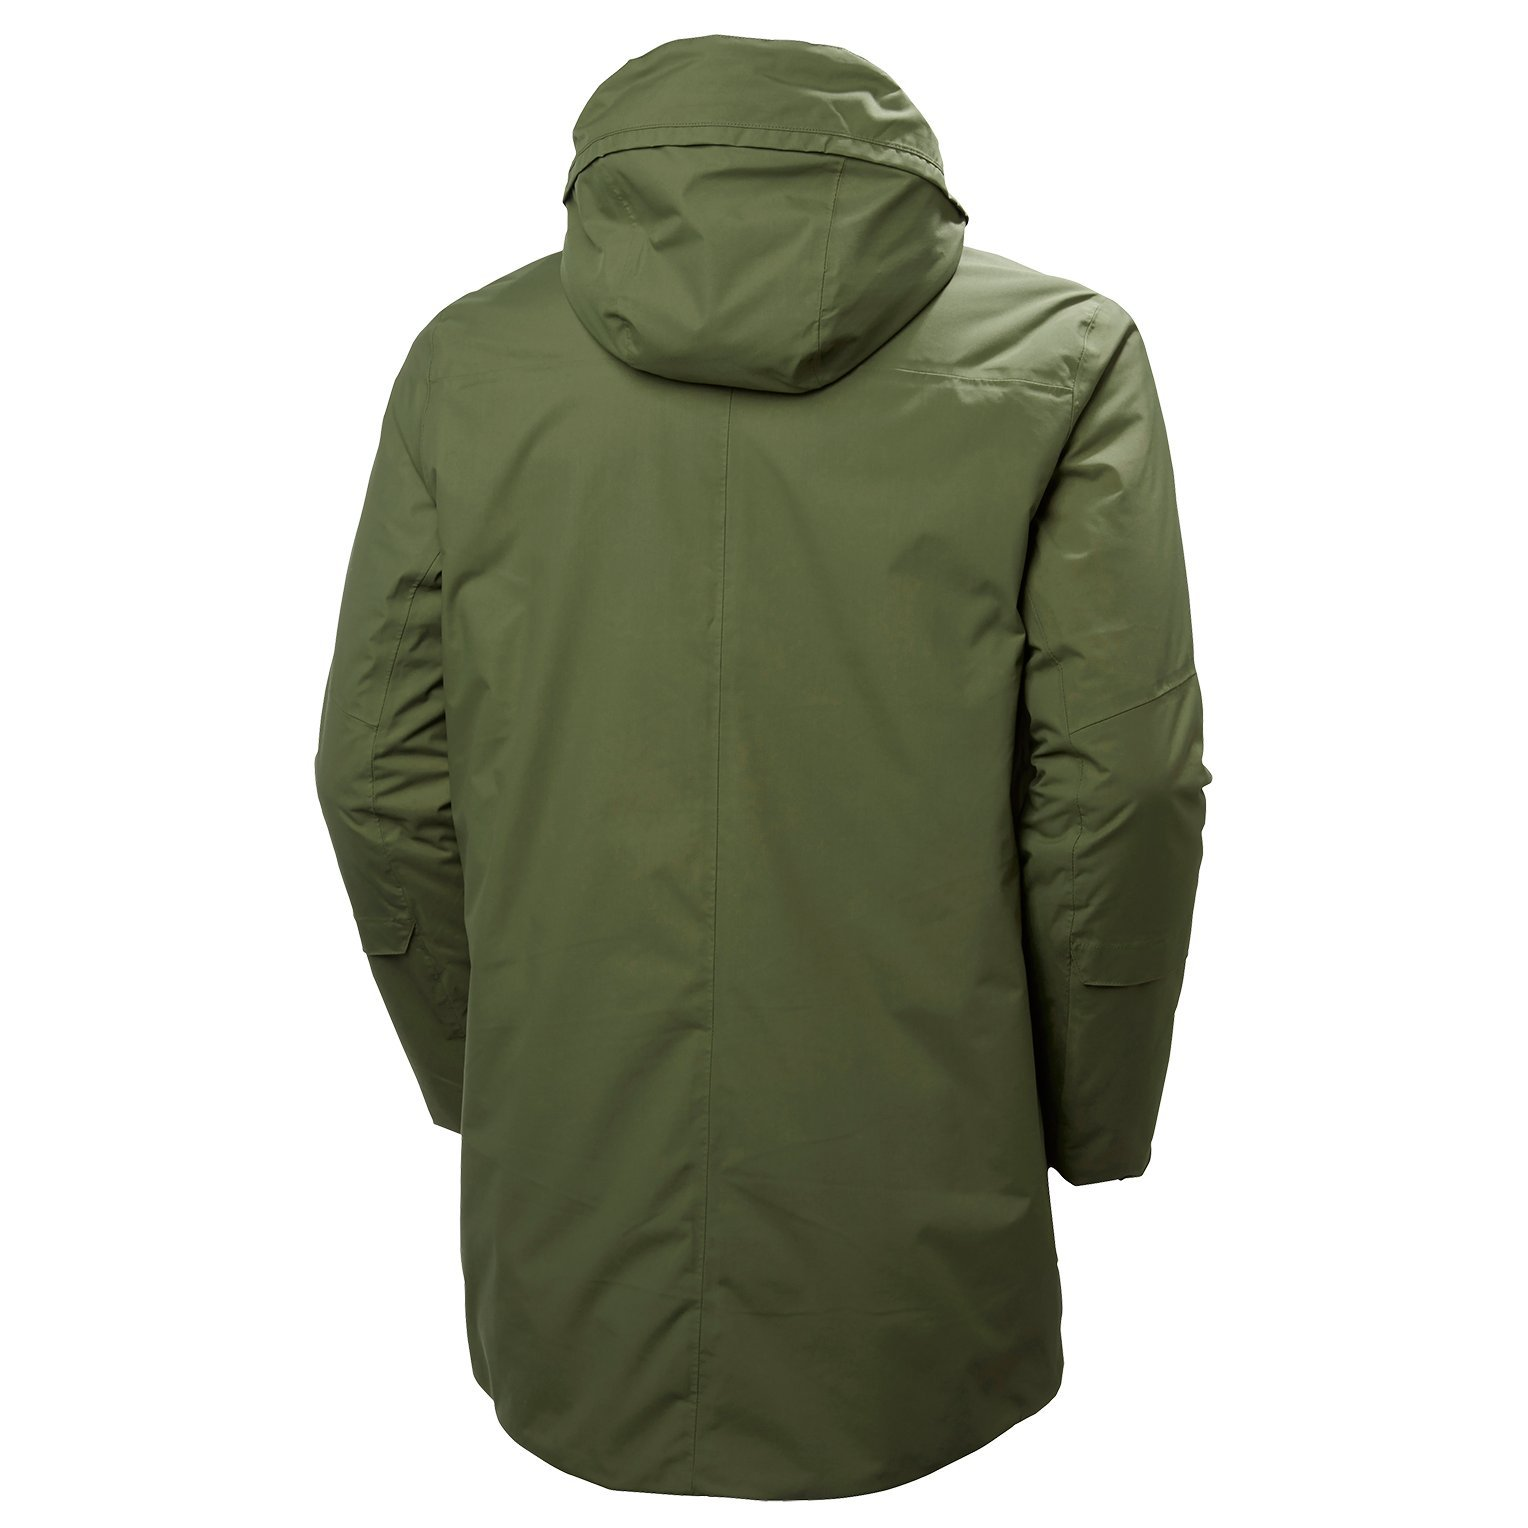 Helly Hansen Galway Parka, Ivy Green, XX-Large by Helly Hansen (Image #2)